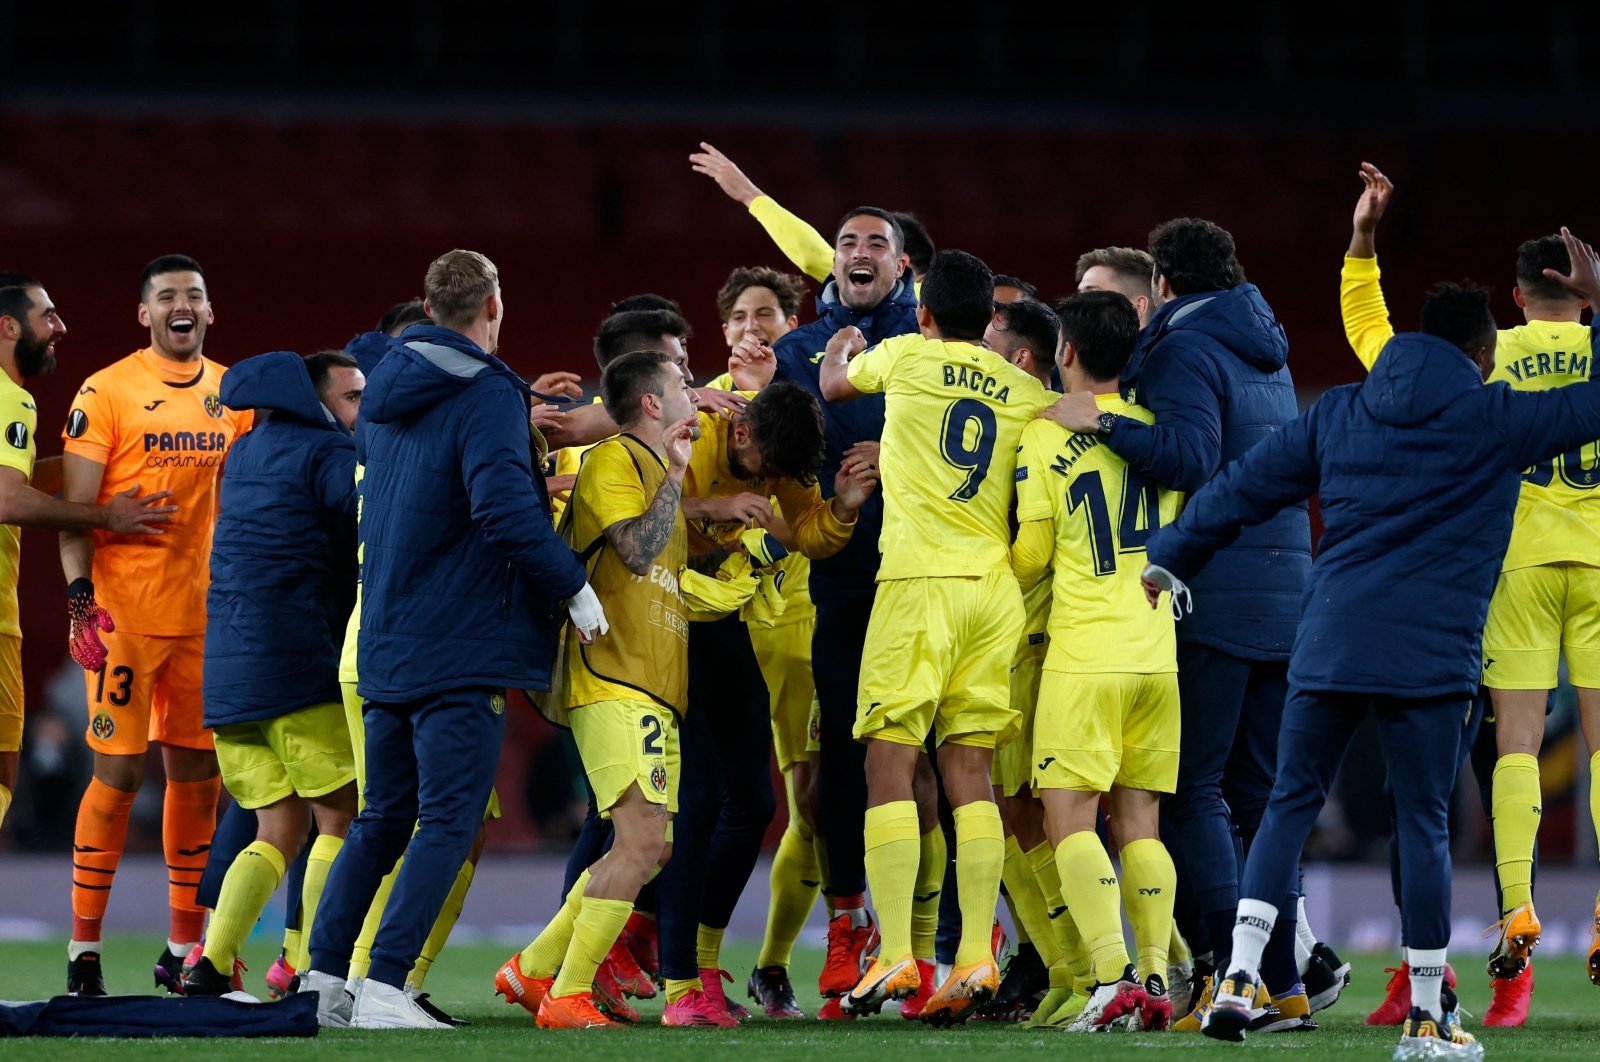 Villarreal players celebrate after reaching the UEFA Europa League final with a draw against Arsenal at the Emirates Stadium, London, England, May 6, 2021. (AFP Photo)